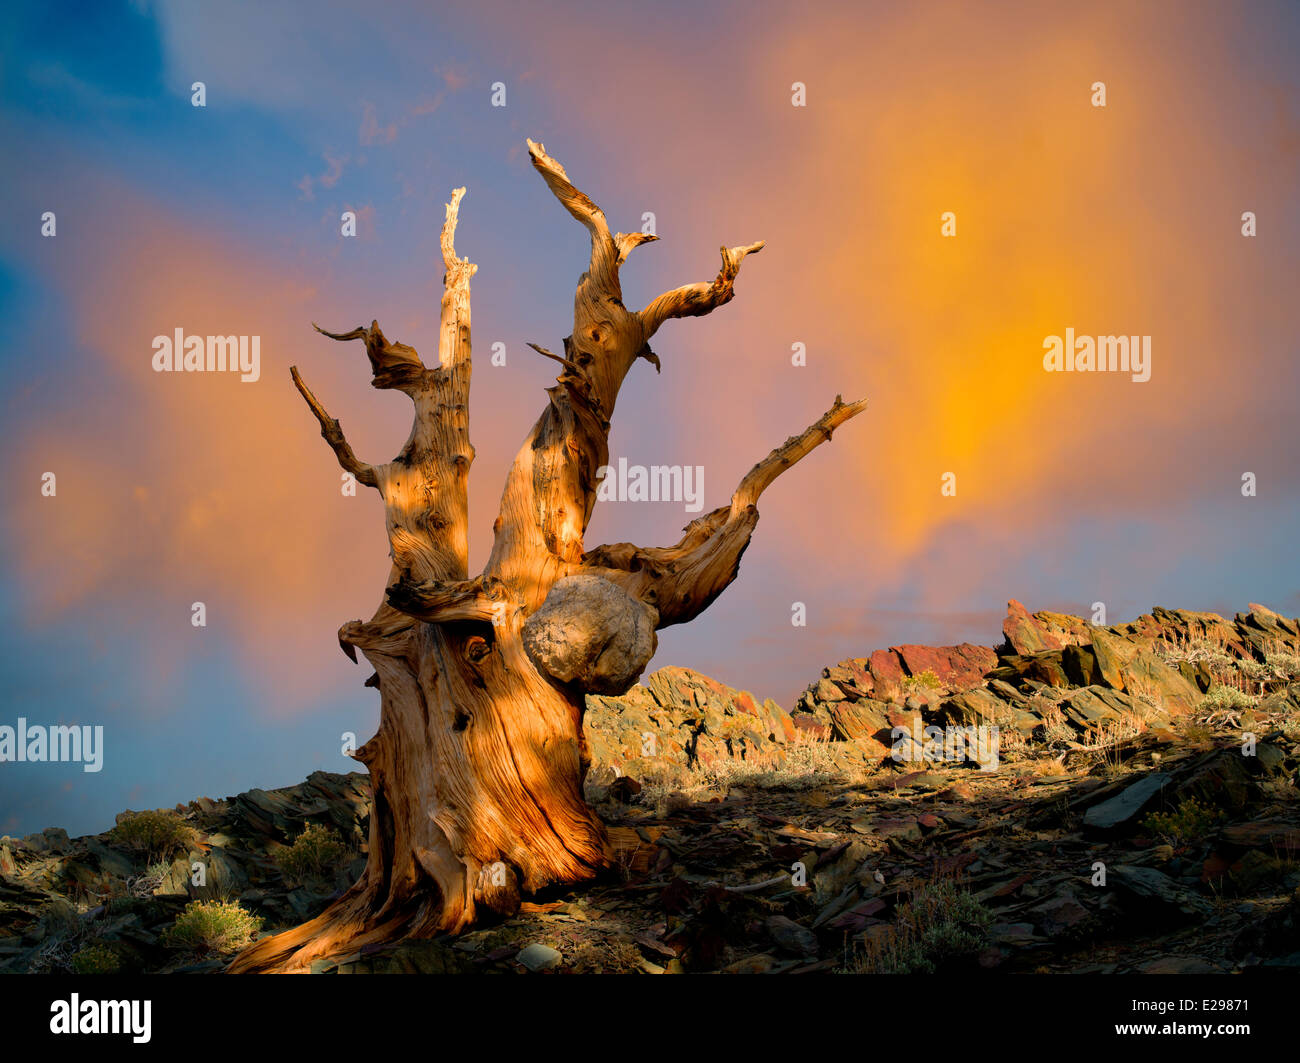 Bristlecone Pine tree. Ancient Bristlecone Pine Forest, Inyo county, California - Stock Image